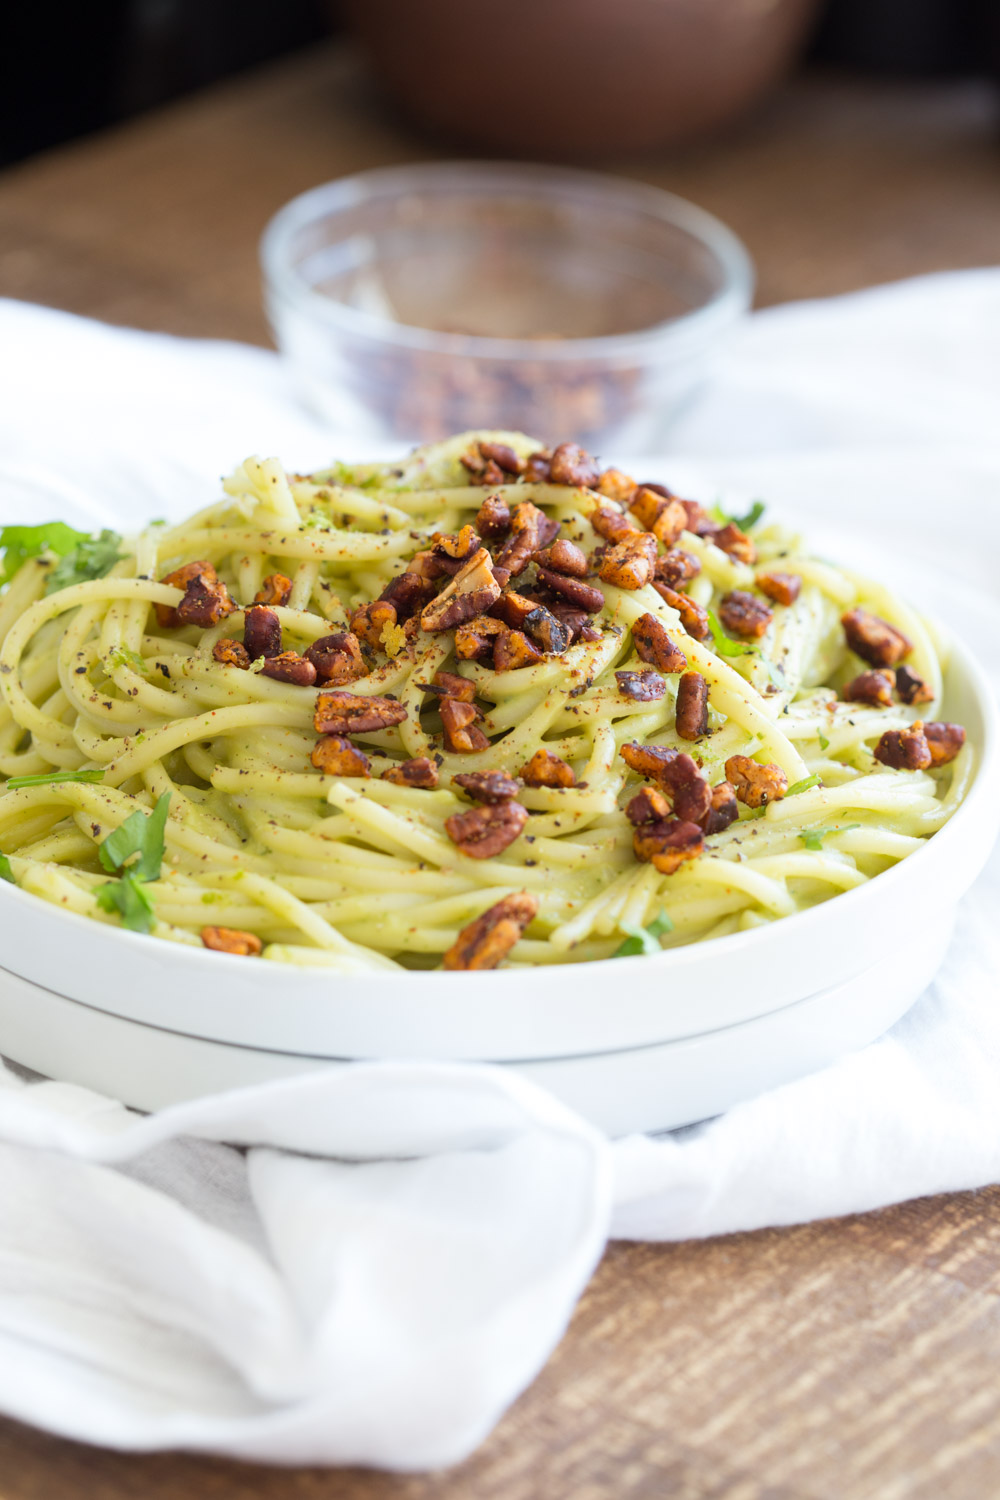 Avocado Pasta with Smoky Pecans. This 20 Minute Creamy Avocado Basil Sauce is great over spaghetti or zoodles. Serve with smoky spicy pecans for amazing flavor.  #Vegan #Soyfree #Recipe. Can be #nutfree. #veganricha | VeganRicha.com